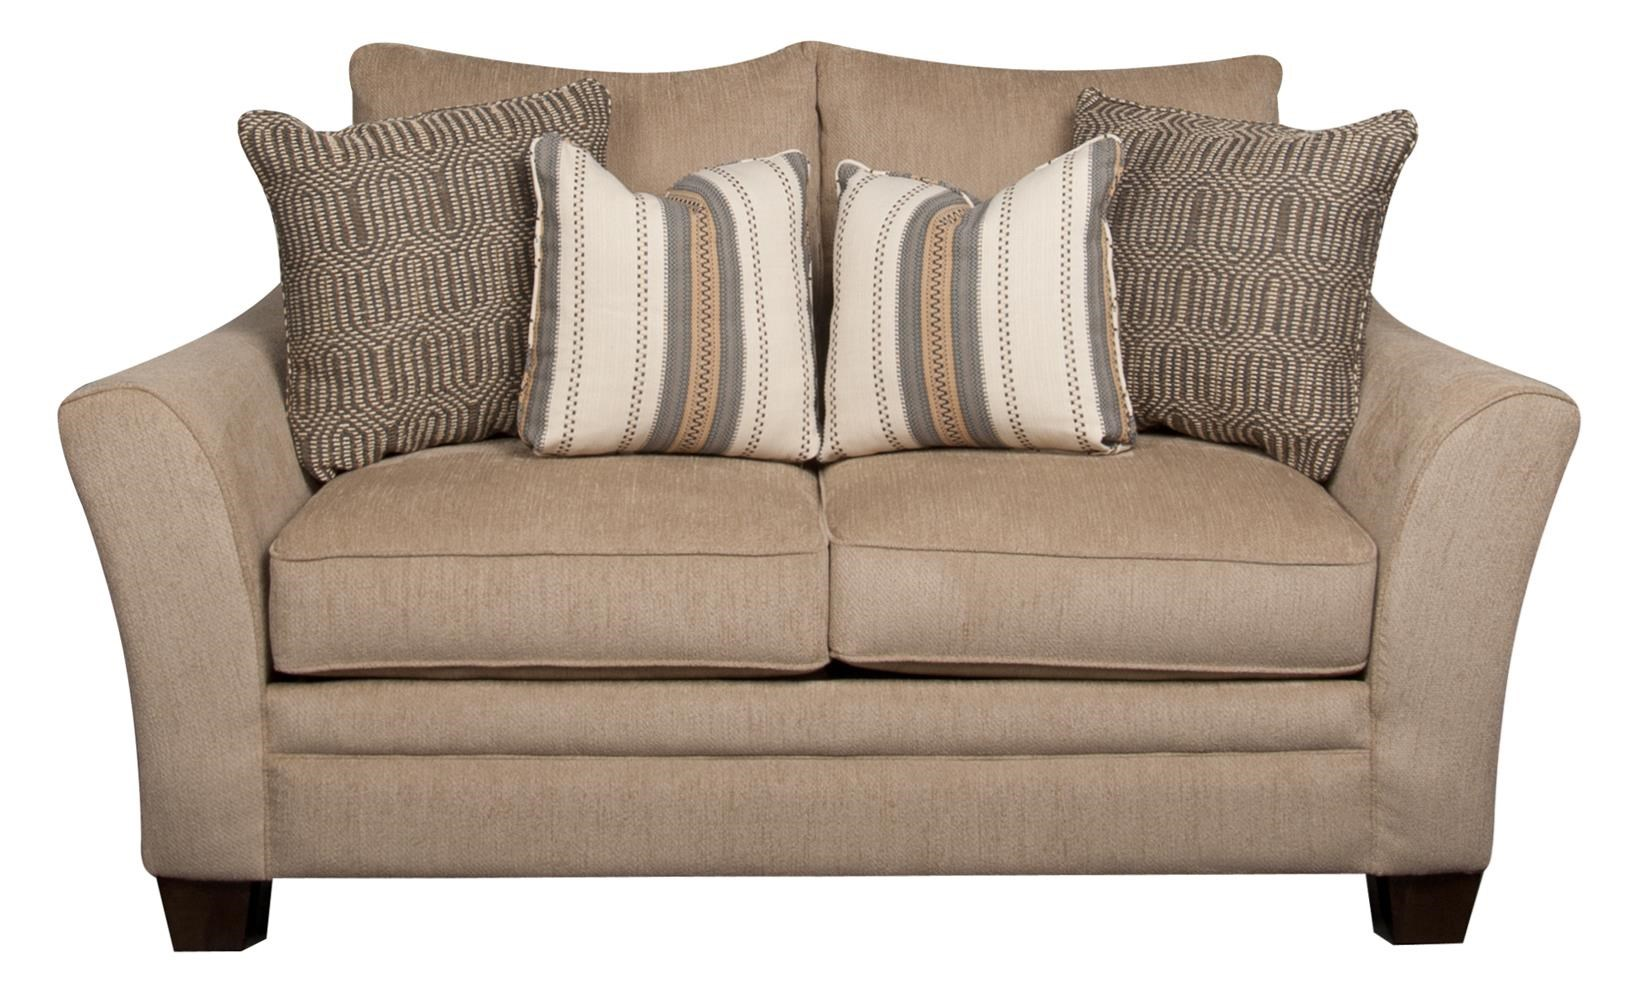 Elliston Place Felicity Felicity Loveseat - Item Number: 334623307